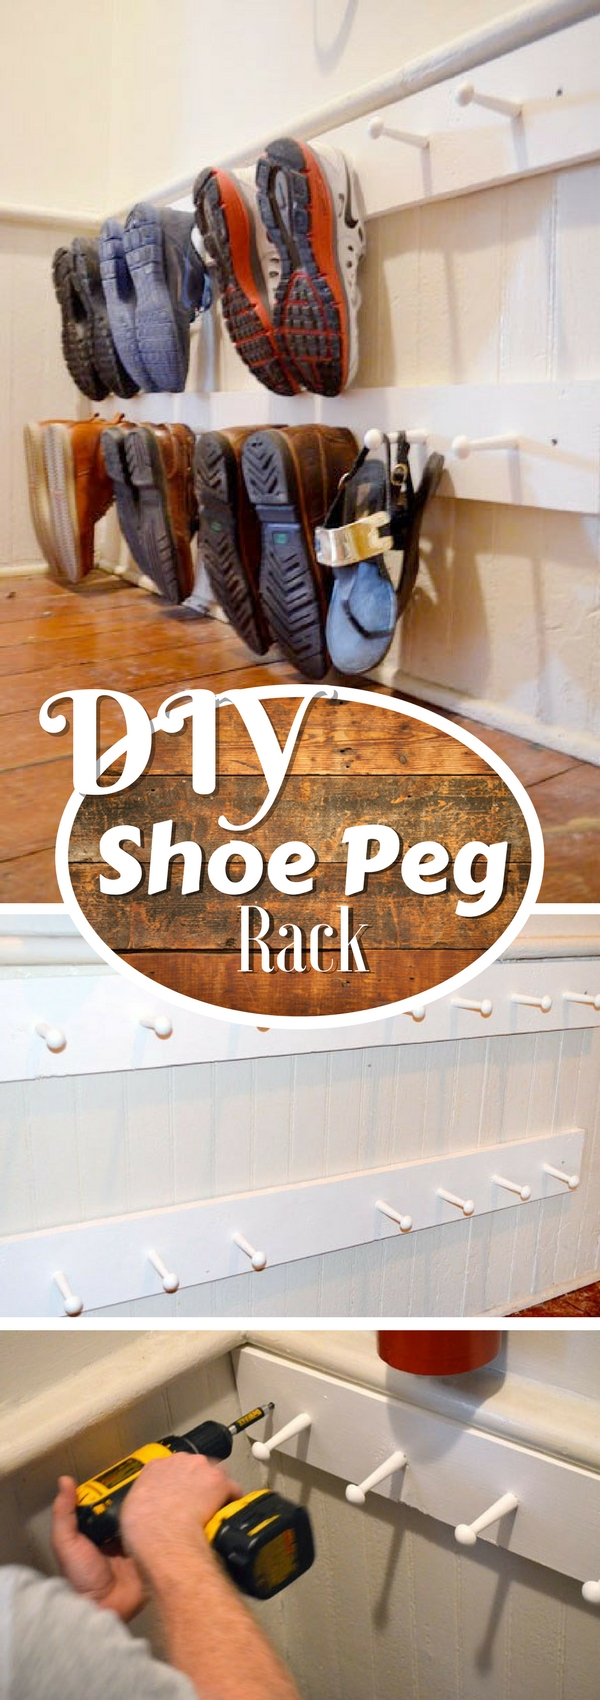 60+ Easy DIY Shoe Rack Ideas You Can Build on a Budget - Check out how to build a very easy DIY shoe peg rack